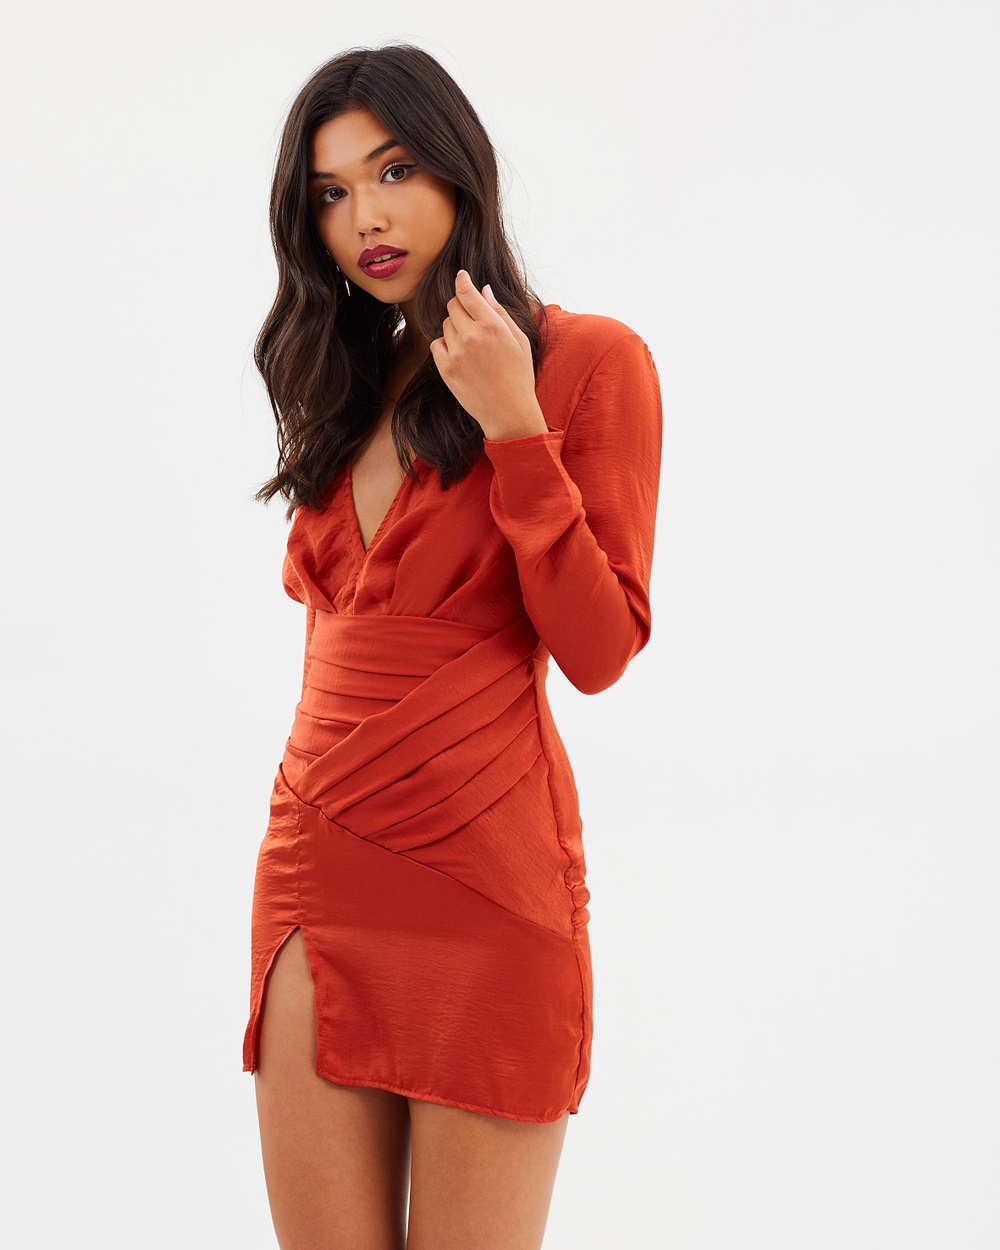 Missguided Silky Long Sleeve Panelled Dress Dresses Orange Silky Long Sleeve Panelled Dress